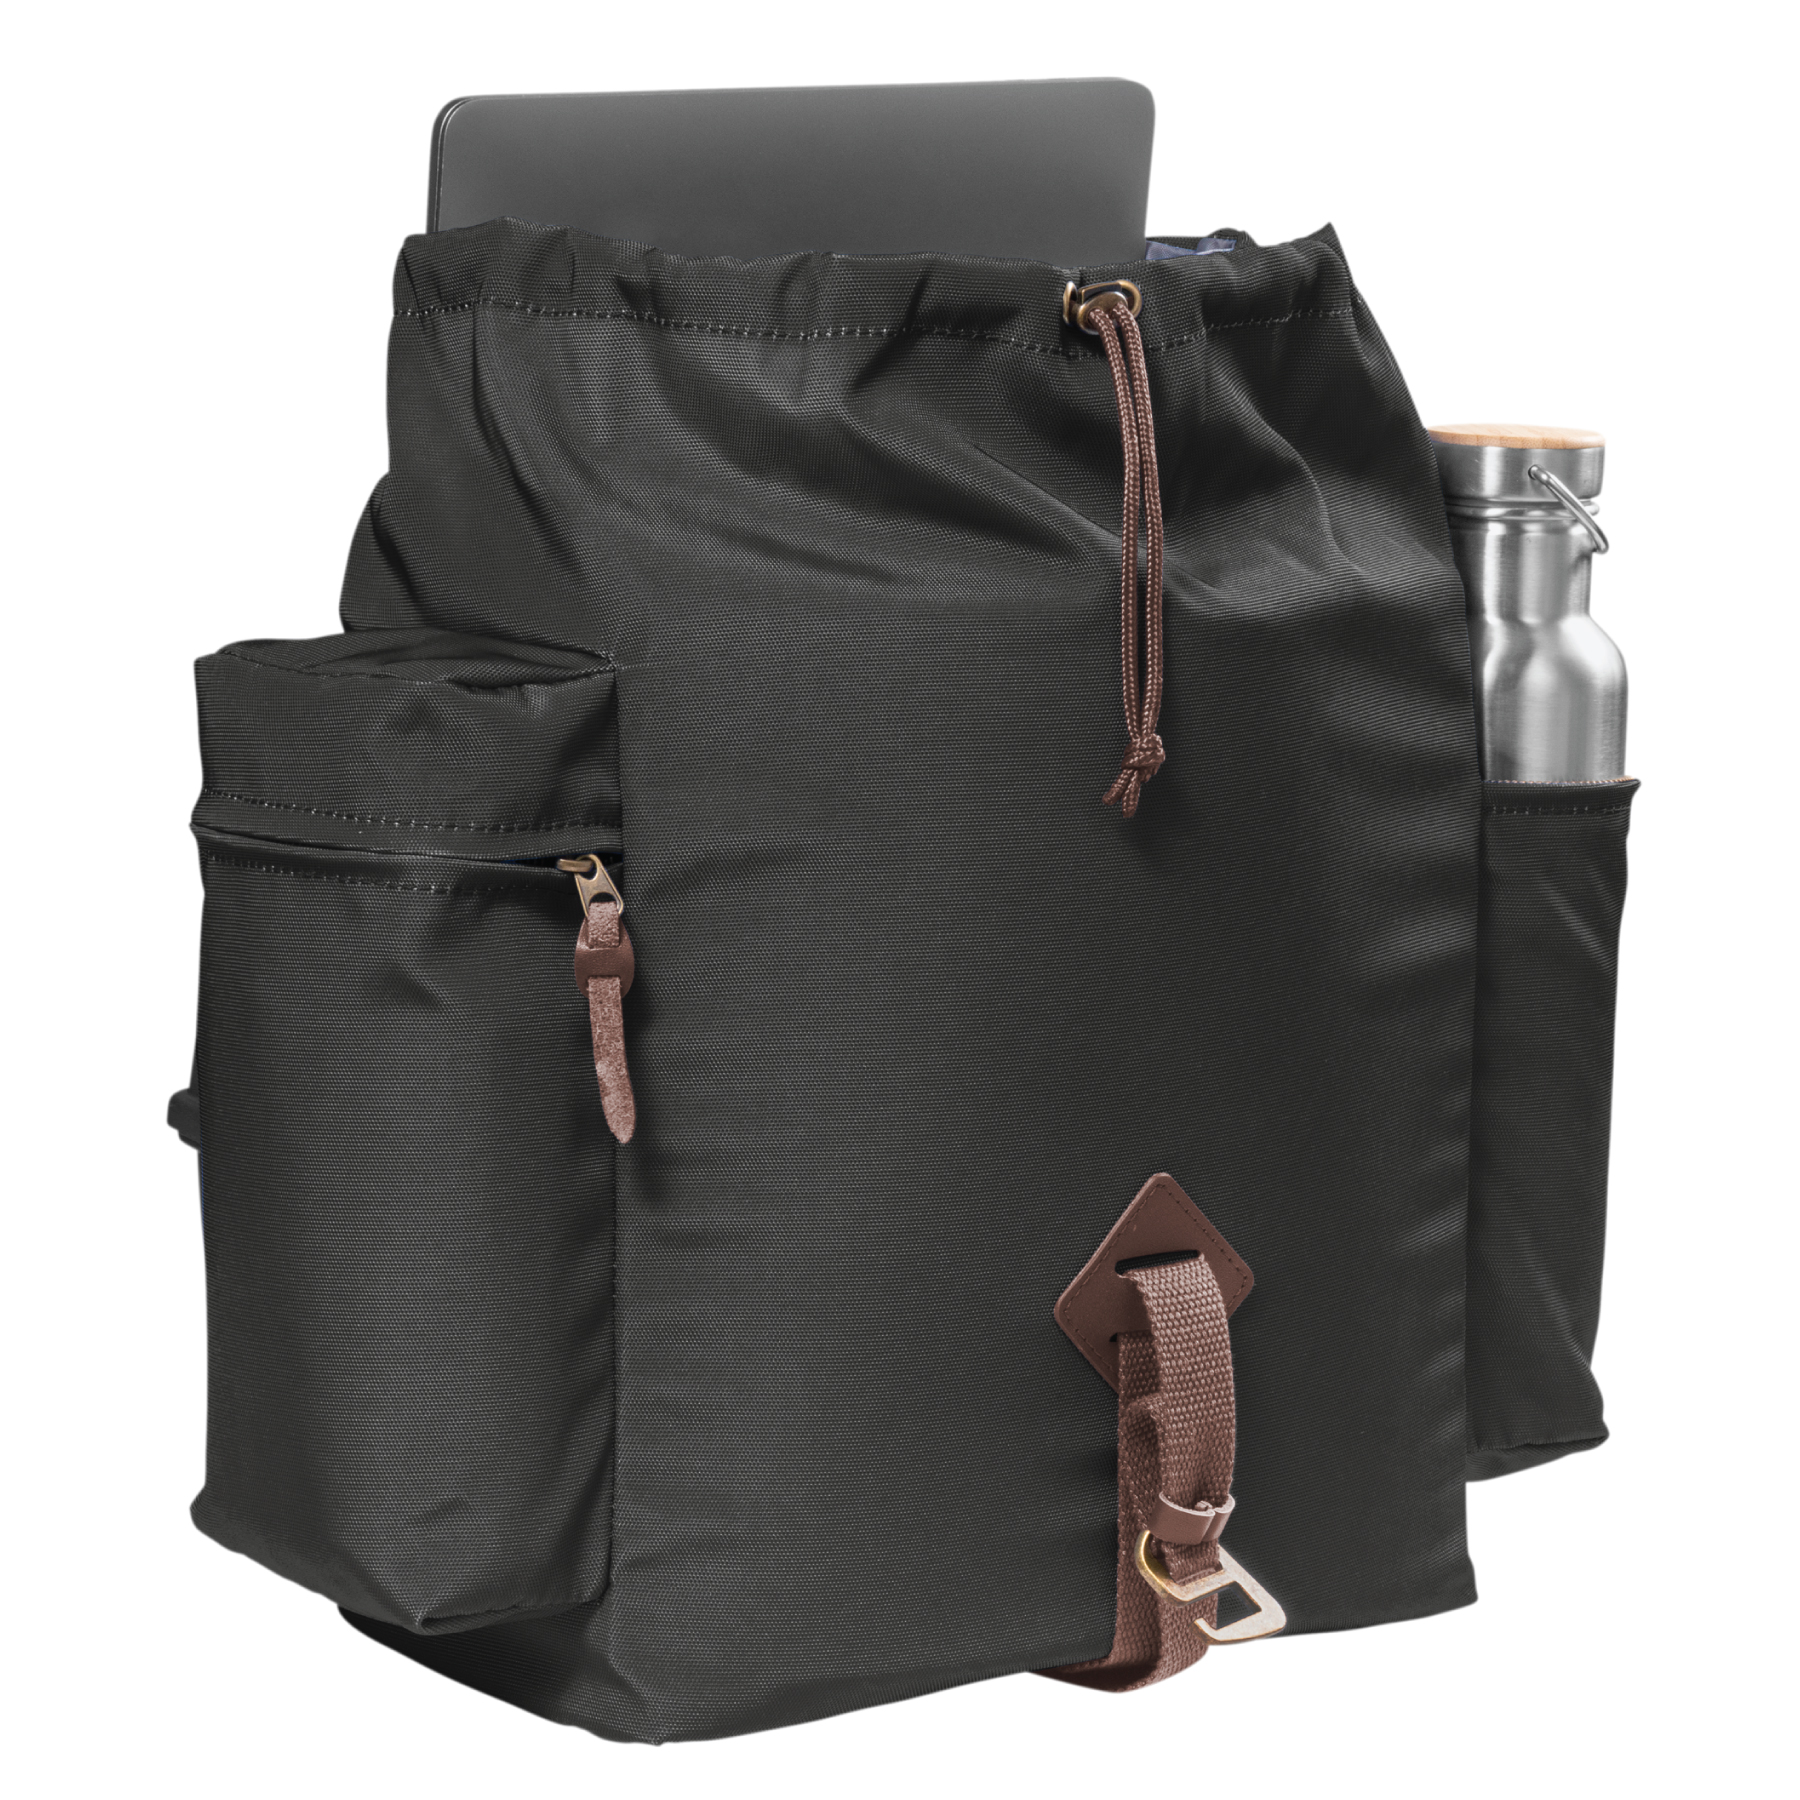 Foundation Backpack - RCG4908